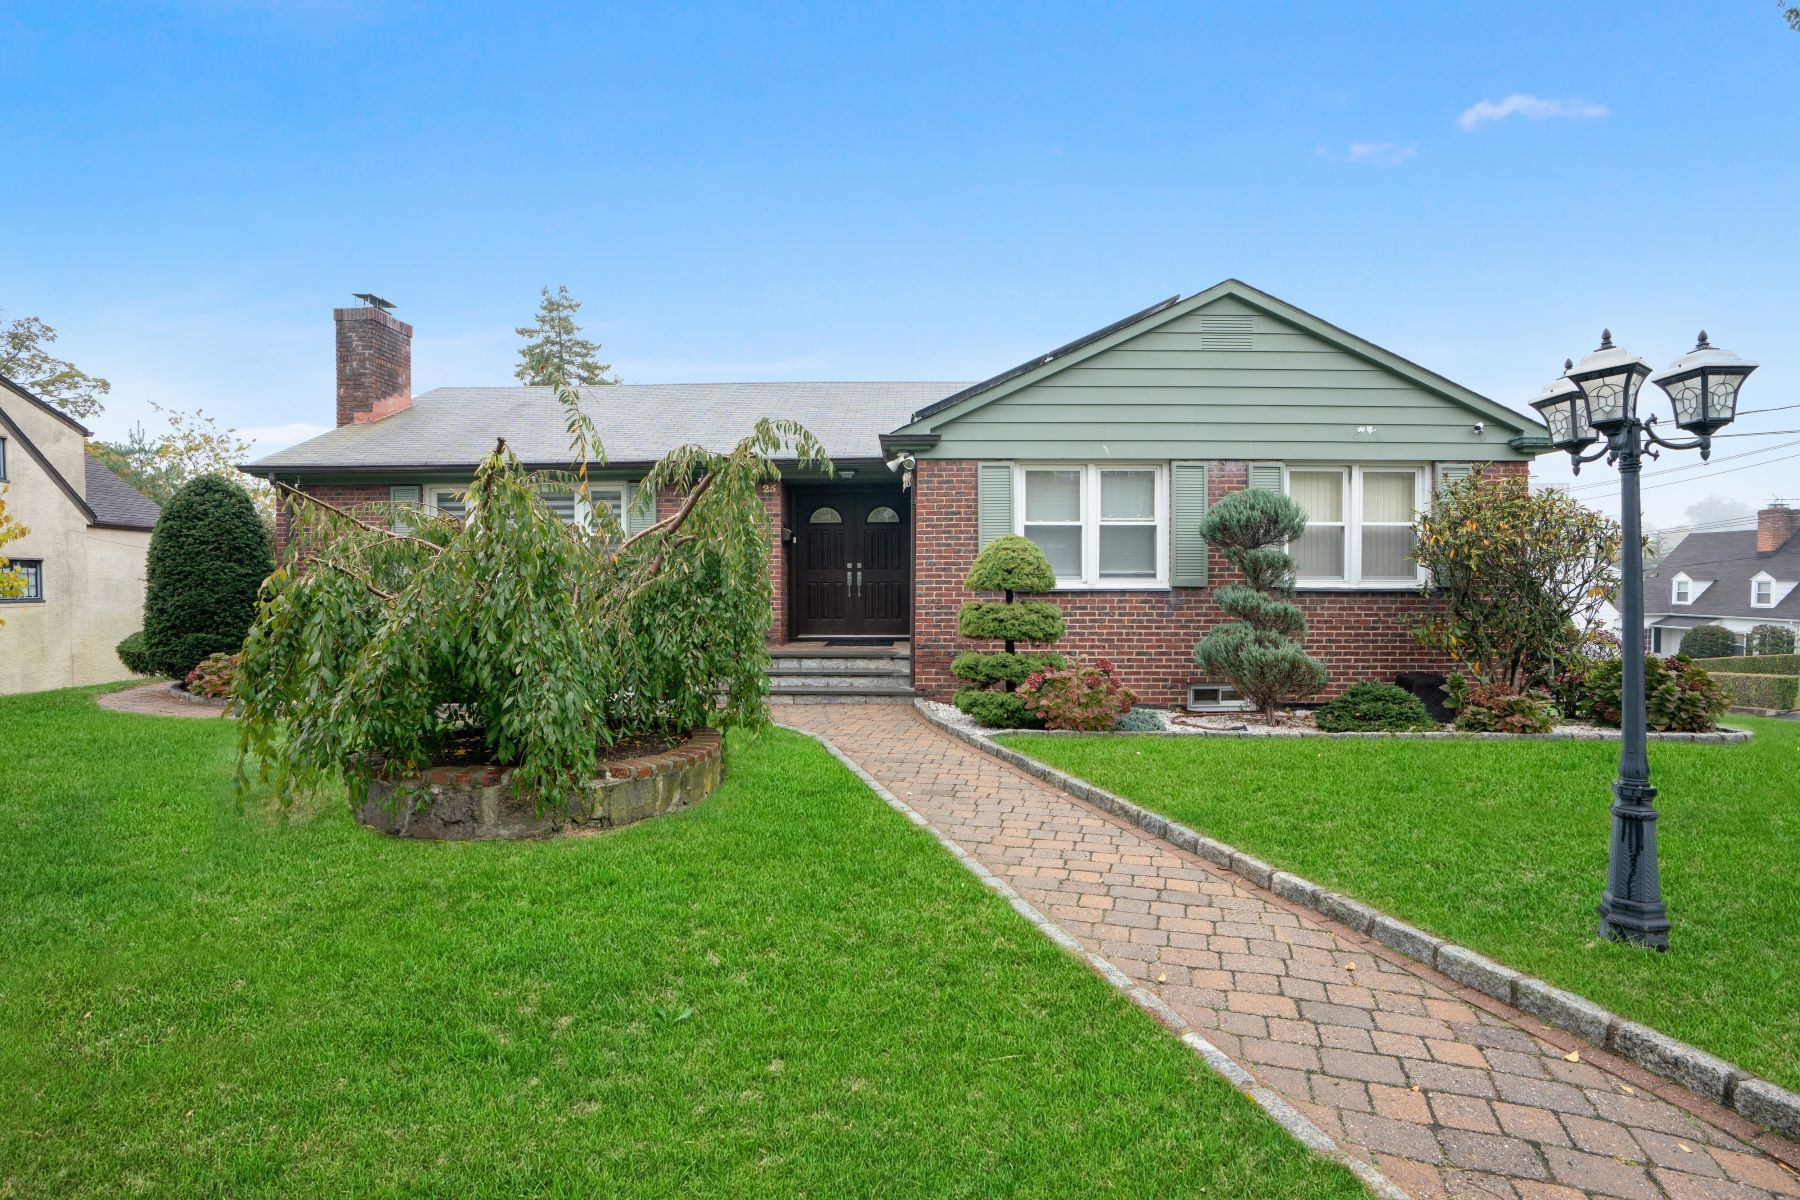 Single Family Homes for Active at Welcome To 25 Rosedale Road 25 Rosedale Road Yonkers, New York 10710 United States